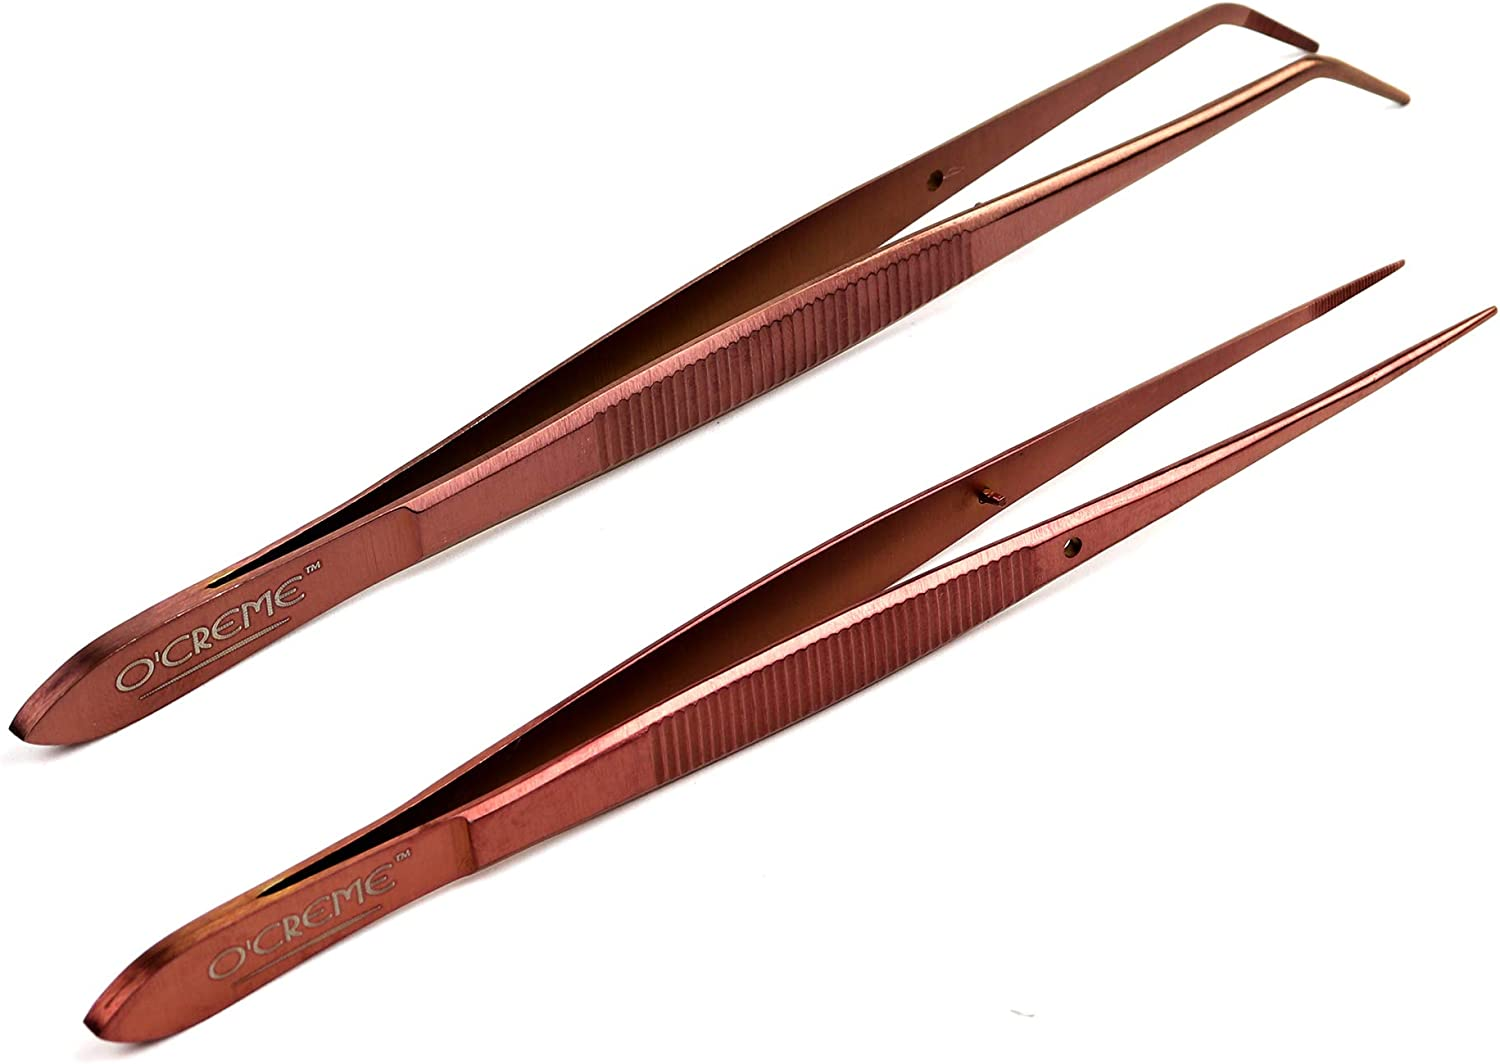 O'Creme Rose Gold Stainless Steel Precision Kitchen Culinary Fine-Tip Tweezer Tongs, 1 with Curved Tip and 1 with Straight Tip